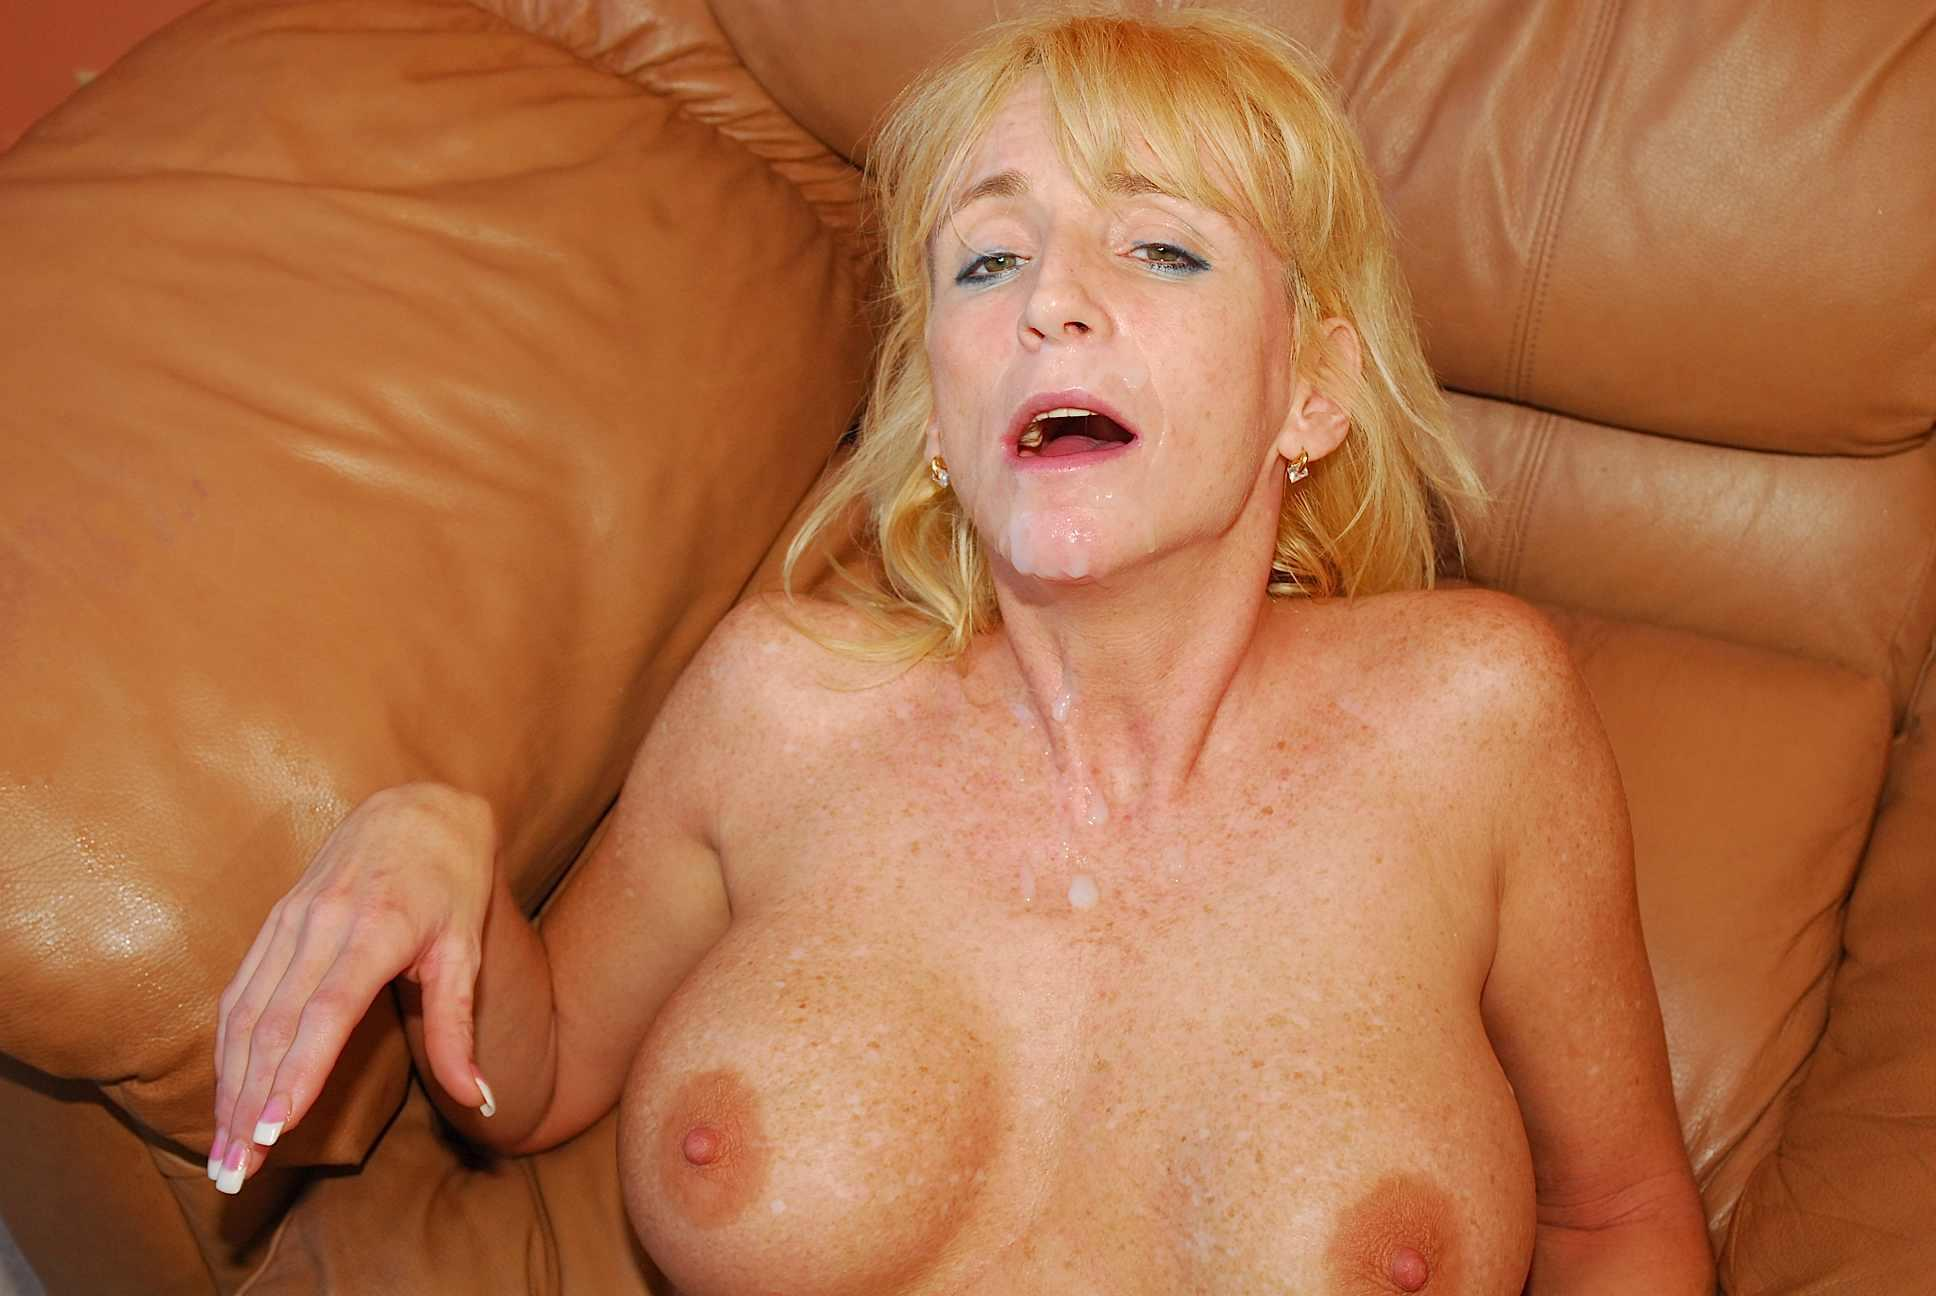 Mature faces porn